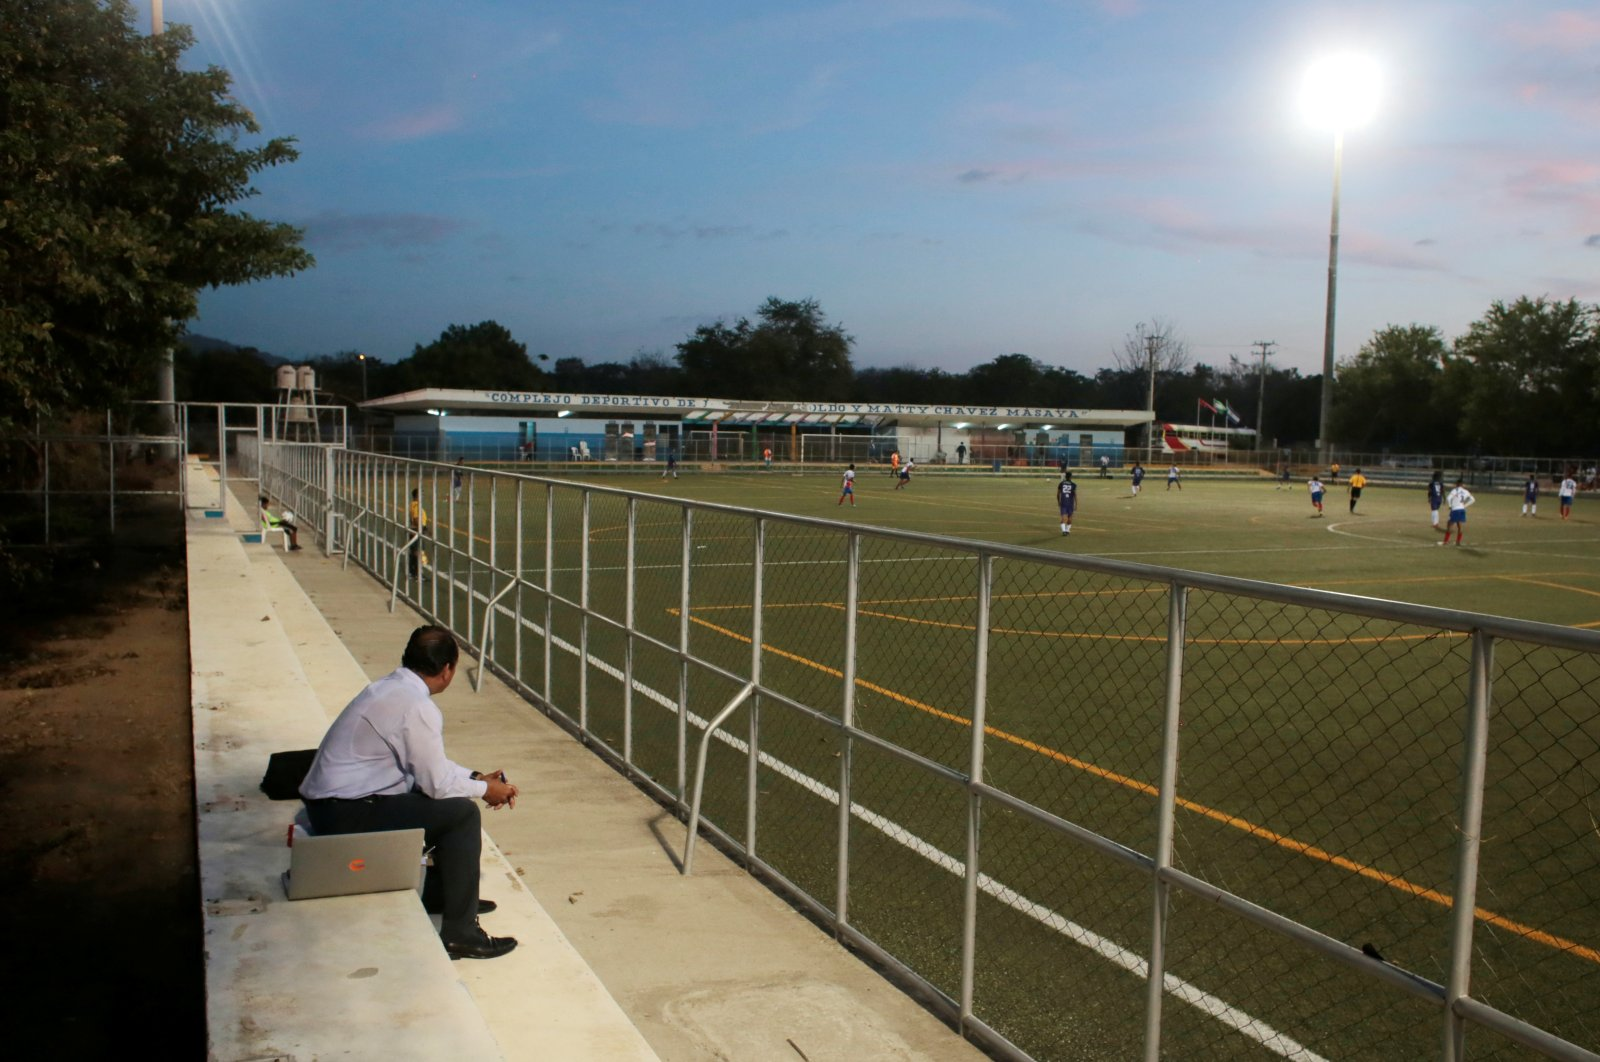 A fan watches a match between Juventus FC and Real Madriz FC in Liga Primera at Arnoldo Matty Chavez Stadium, Masaya, Nicaragua, April 11, 2020. (Reuters Photo)